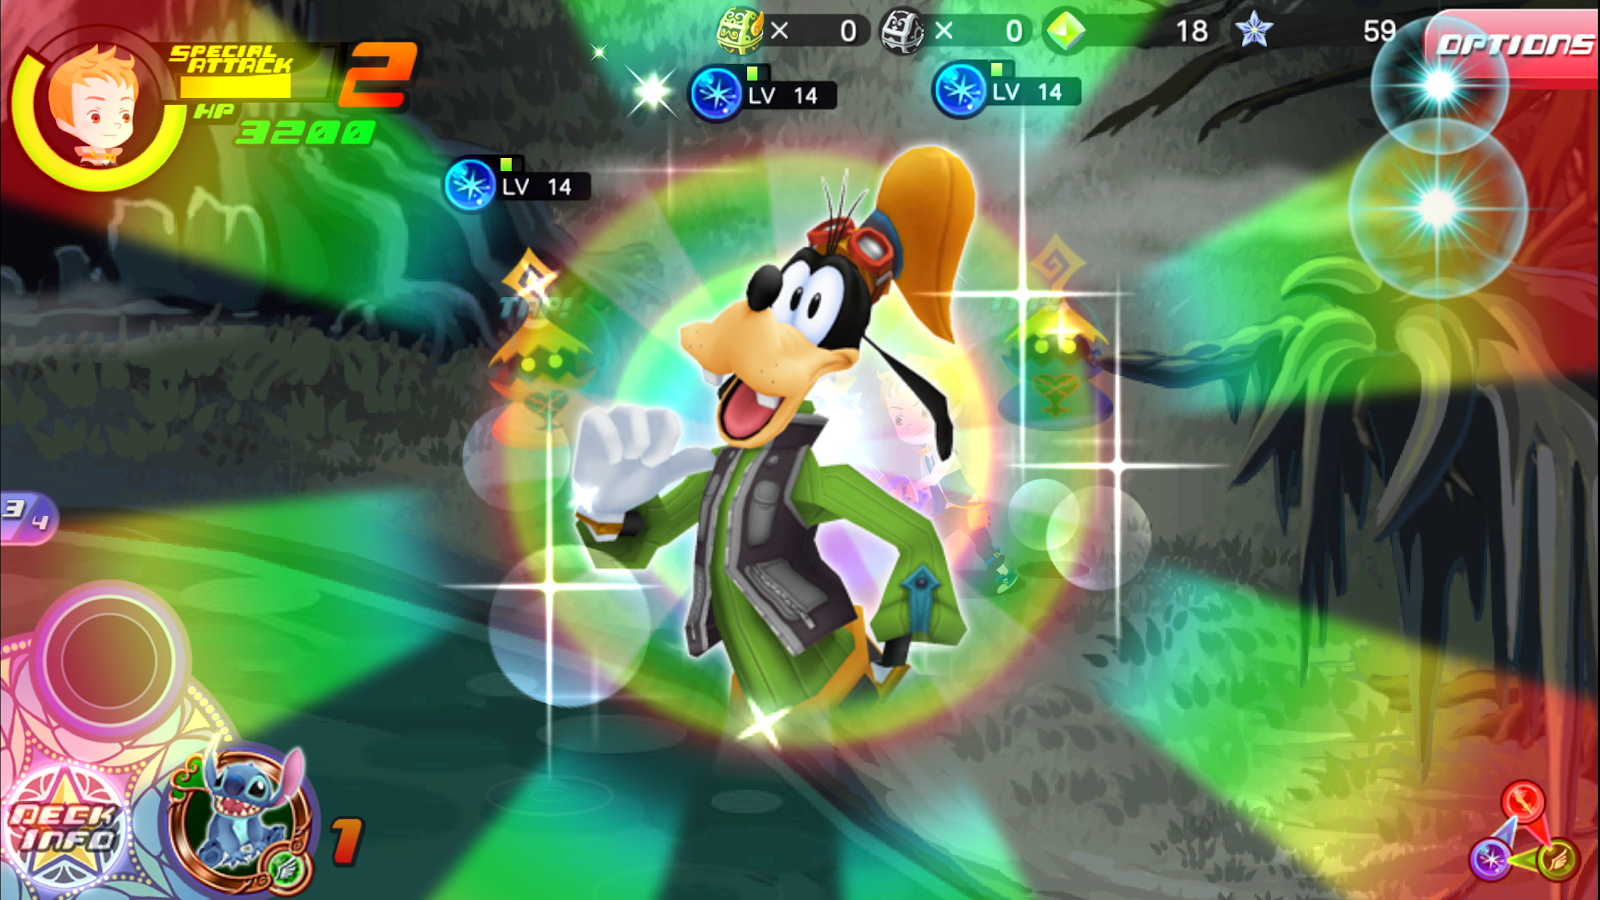 KINGDOM HEARTS Unchained χ Screenshot 14